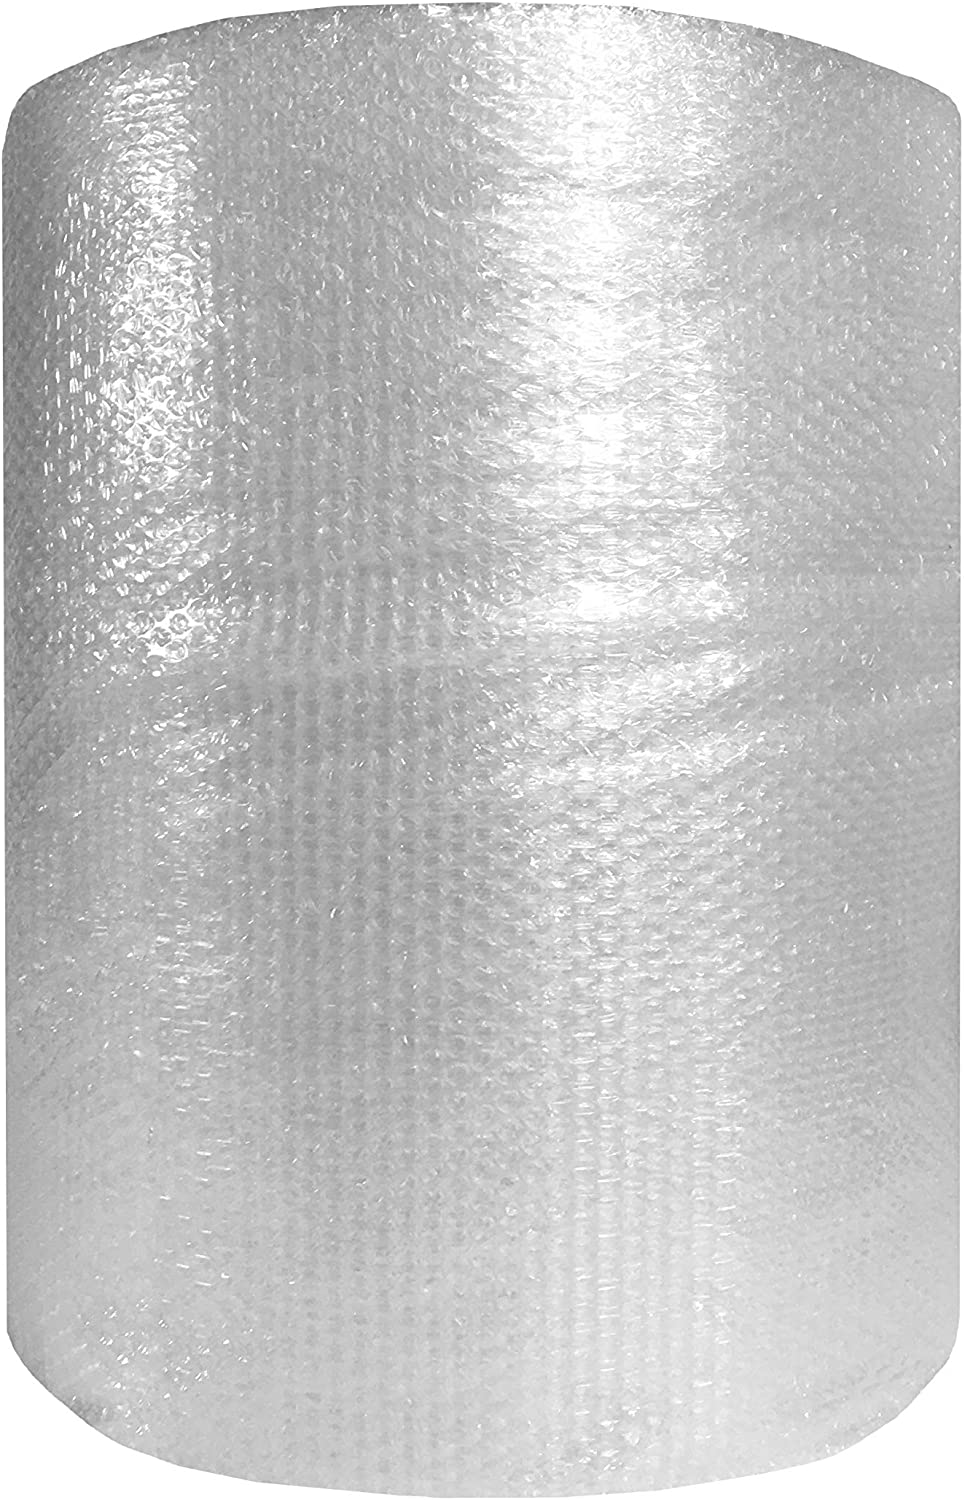 "Bubble Roll 24"" Wide x 175' - Small 3/16"" Sized Bubbles"